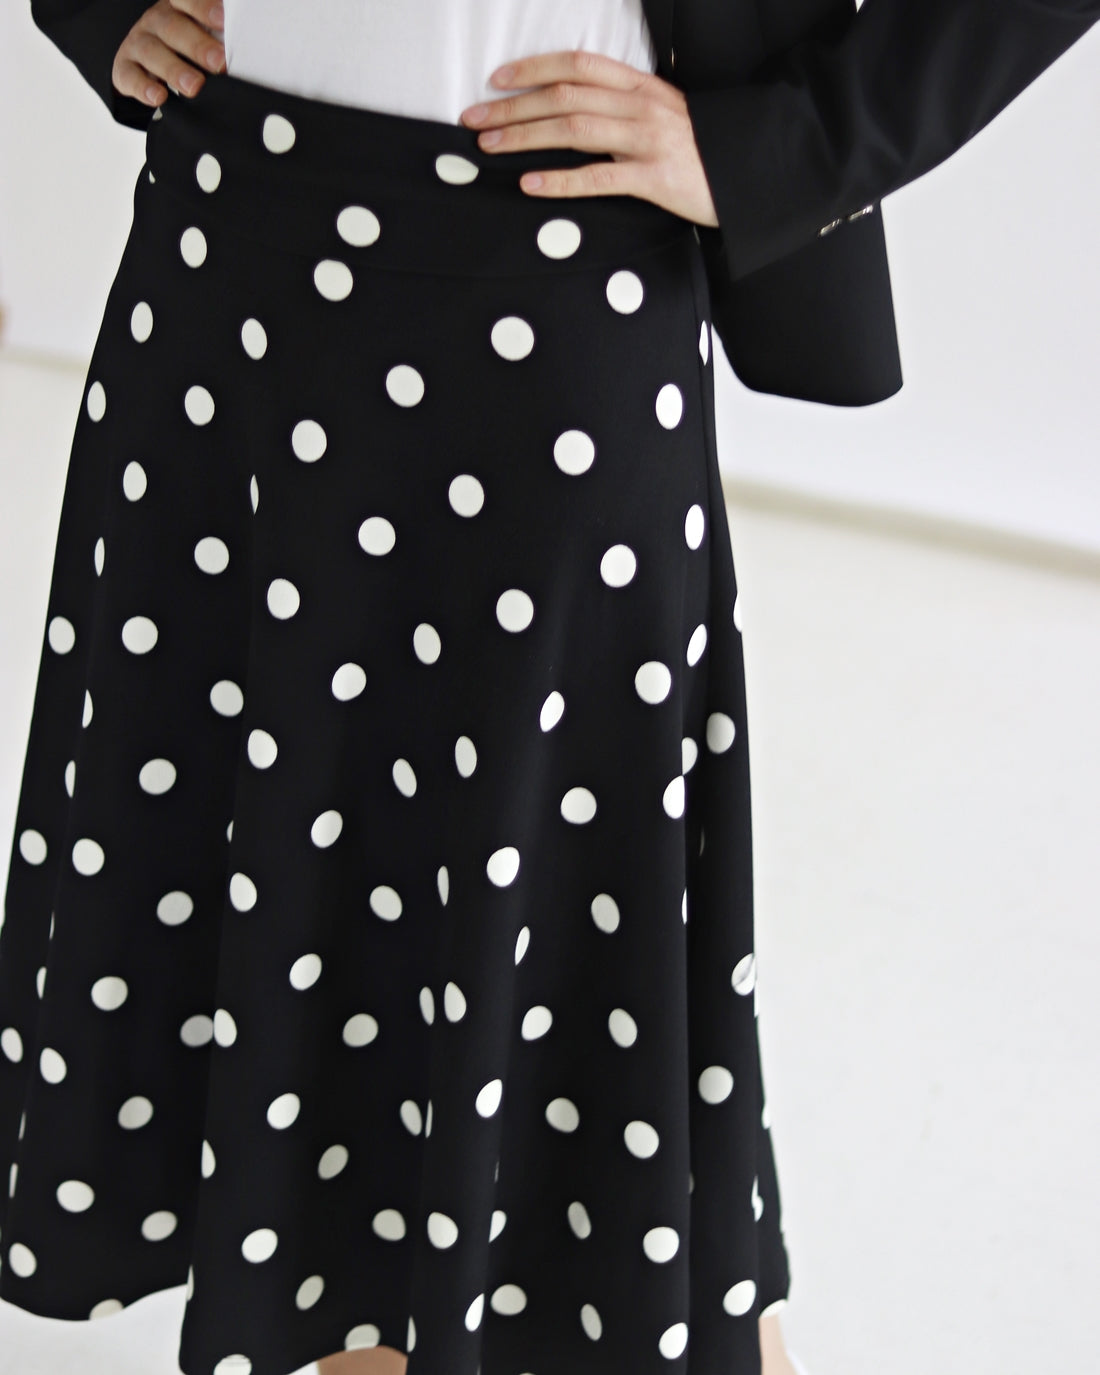 Polka dot Foldover Skirt - Sarah Feldman Modest Clothing